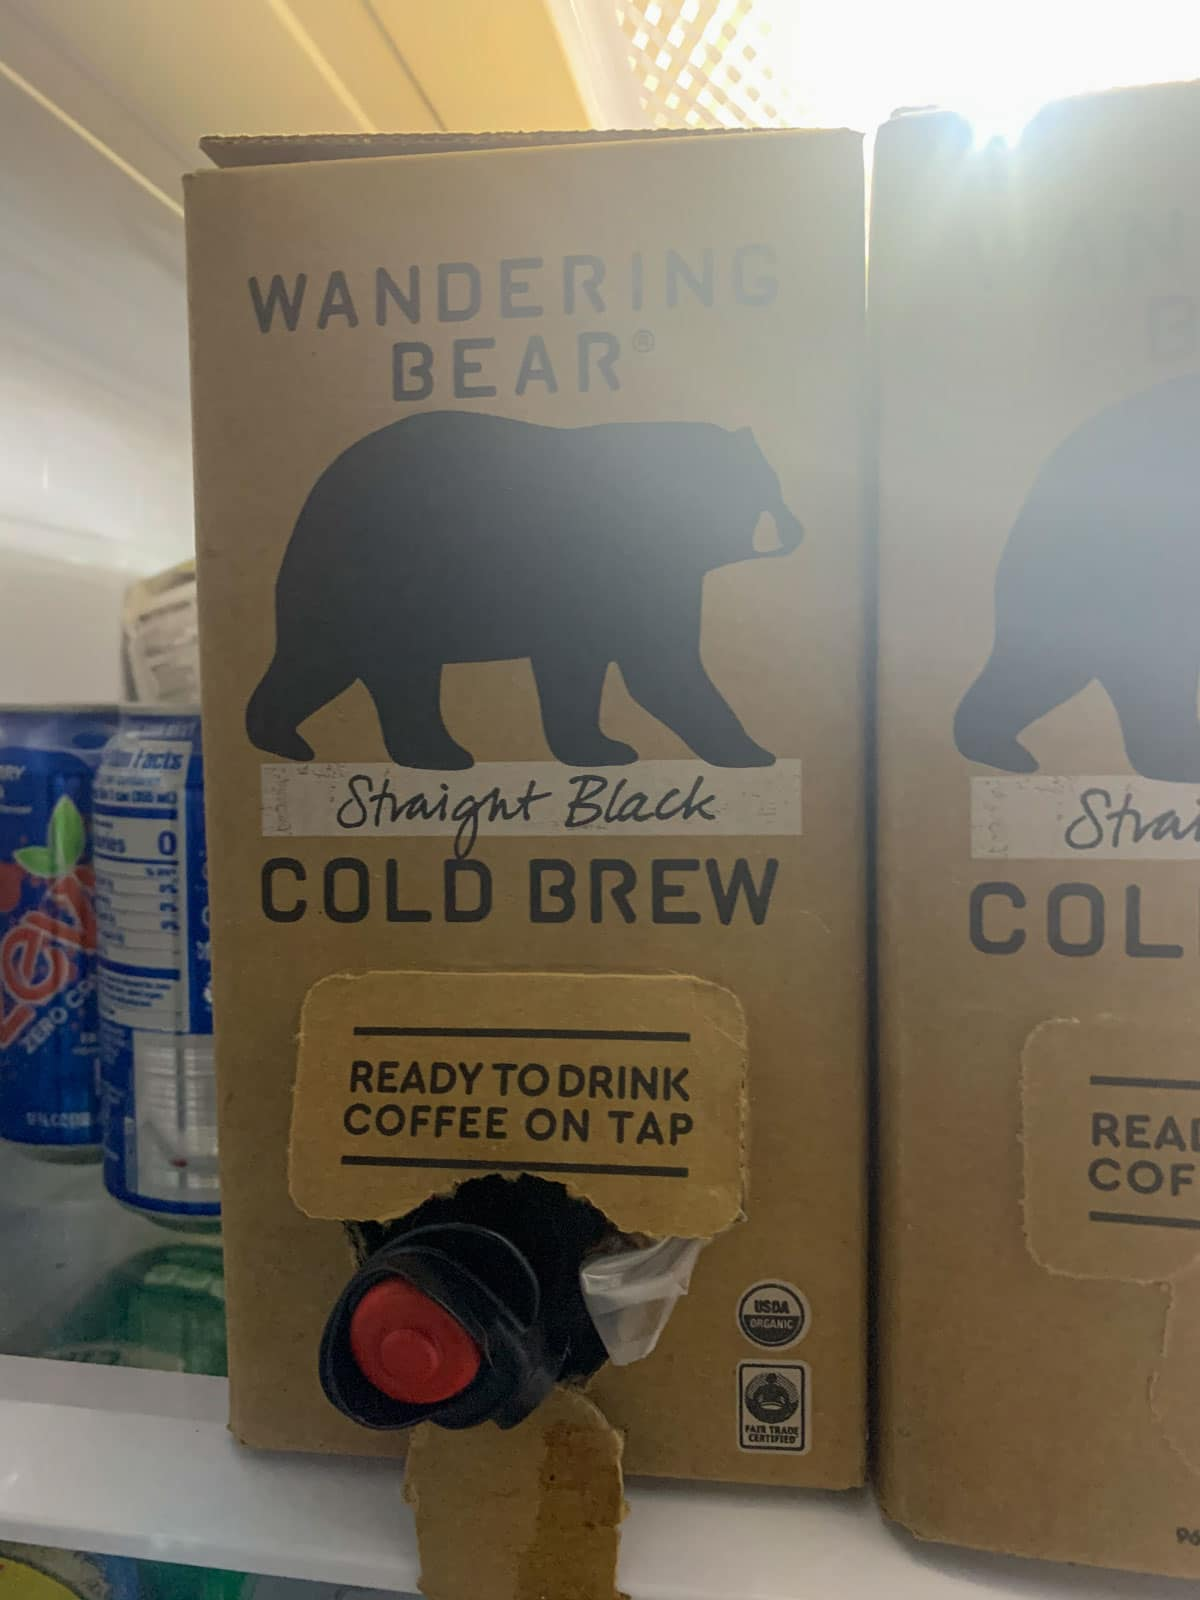 wandering bear cold brew container